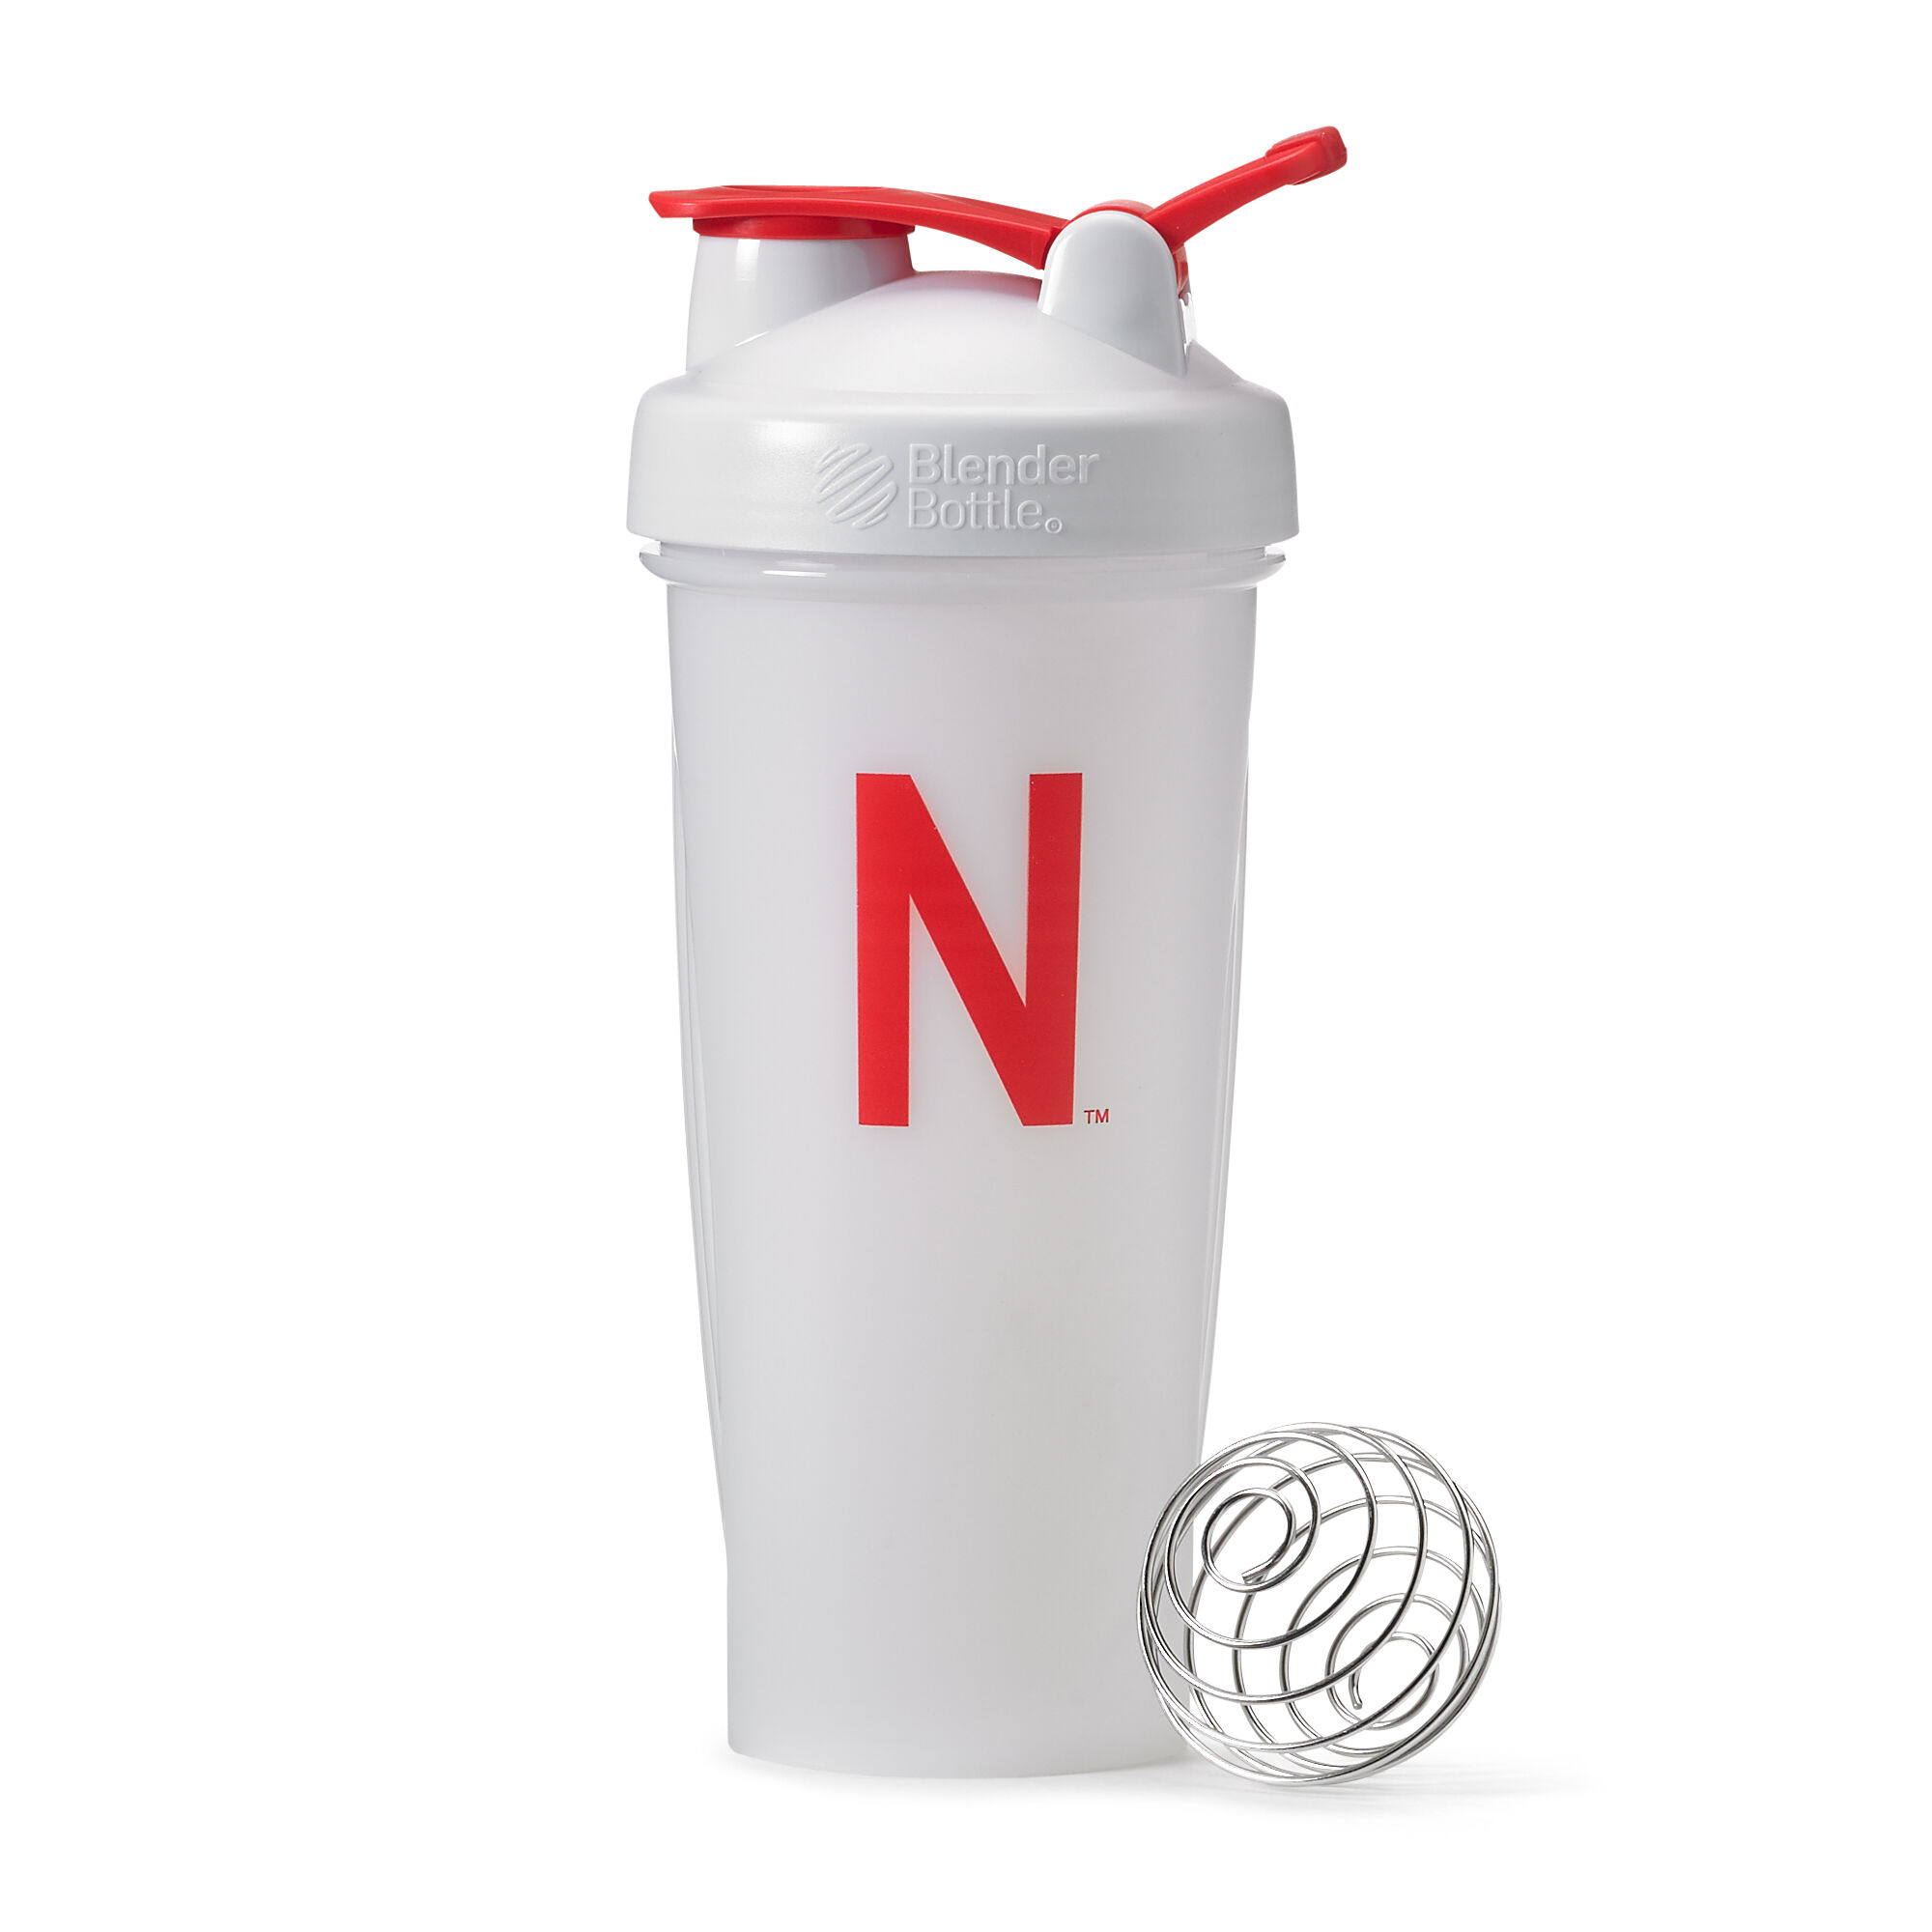 BlenderbottleCollegiate Shaker BottleNebraska 1 Item(s) Blender BottleMixers Shakers And Bottles